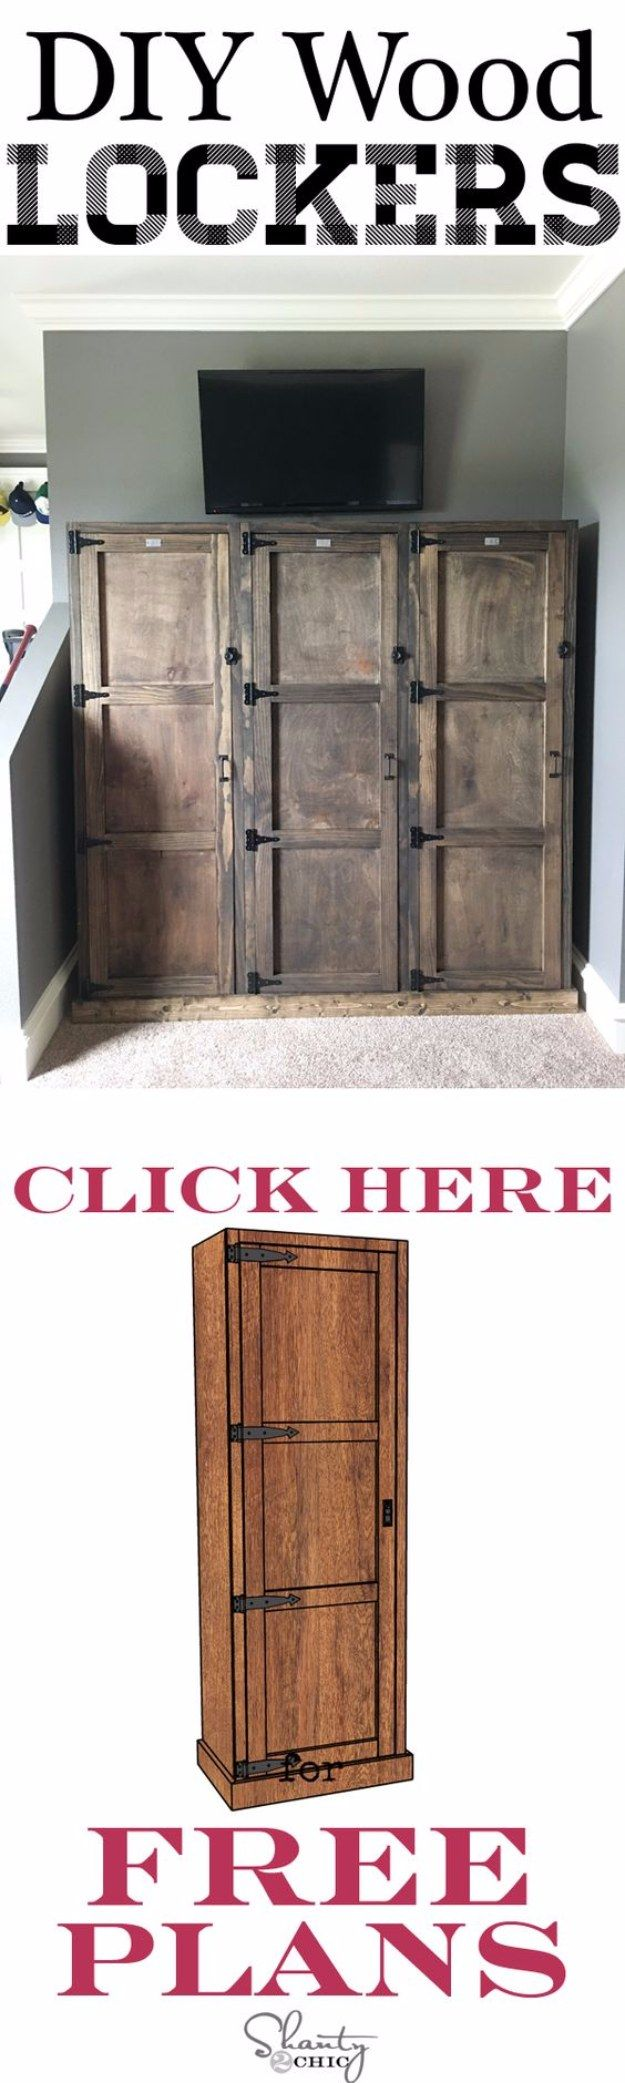 36 diy ideas you need for your garage pinterest garage makeover diy projects your garage needs diy garage locker system do it yourself garage makeover ideas include storage organization shelves and project plans solutioingenieria Gallery